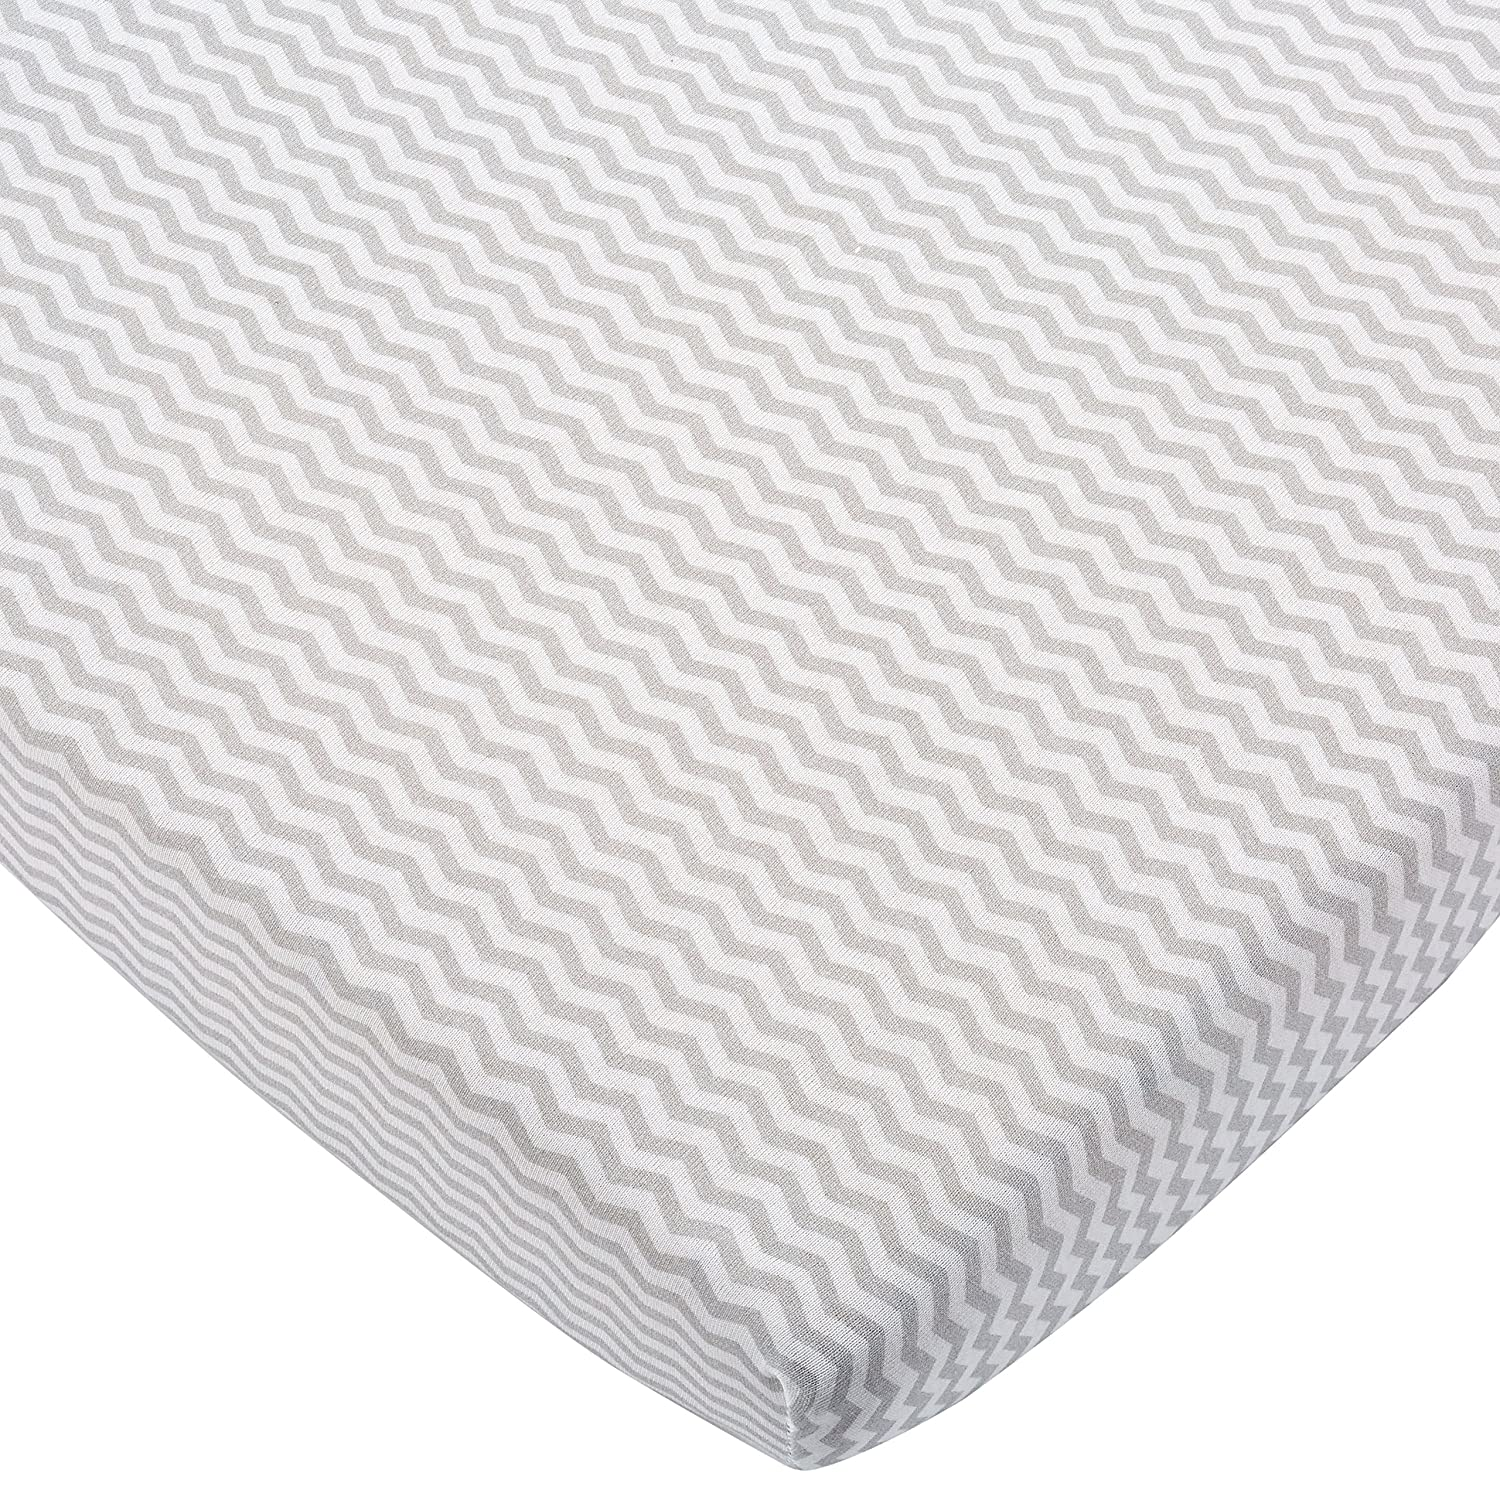 Bébé-Jou 302931 Changing Mat Jersey Cover – Chevron, Grey